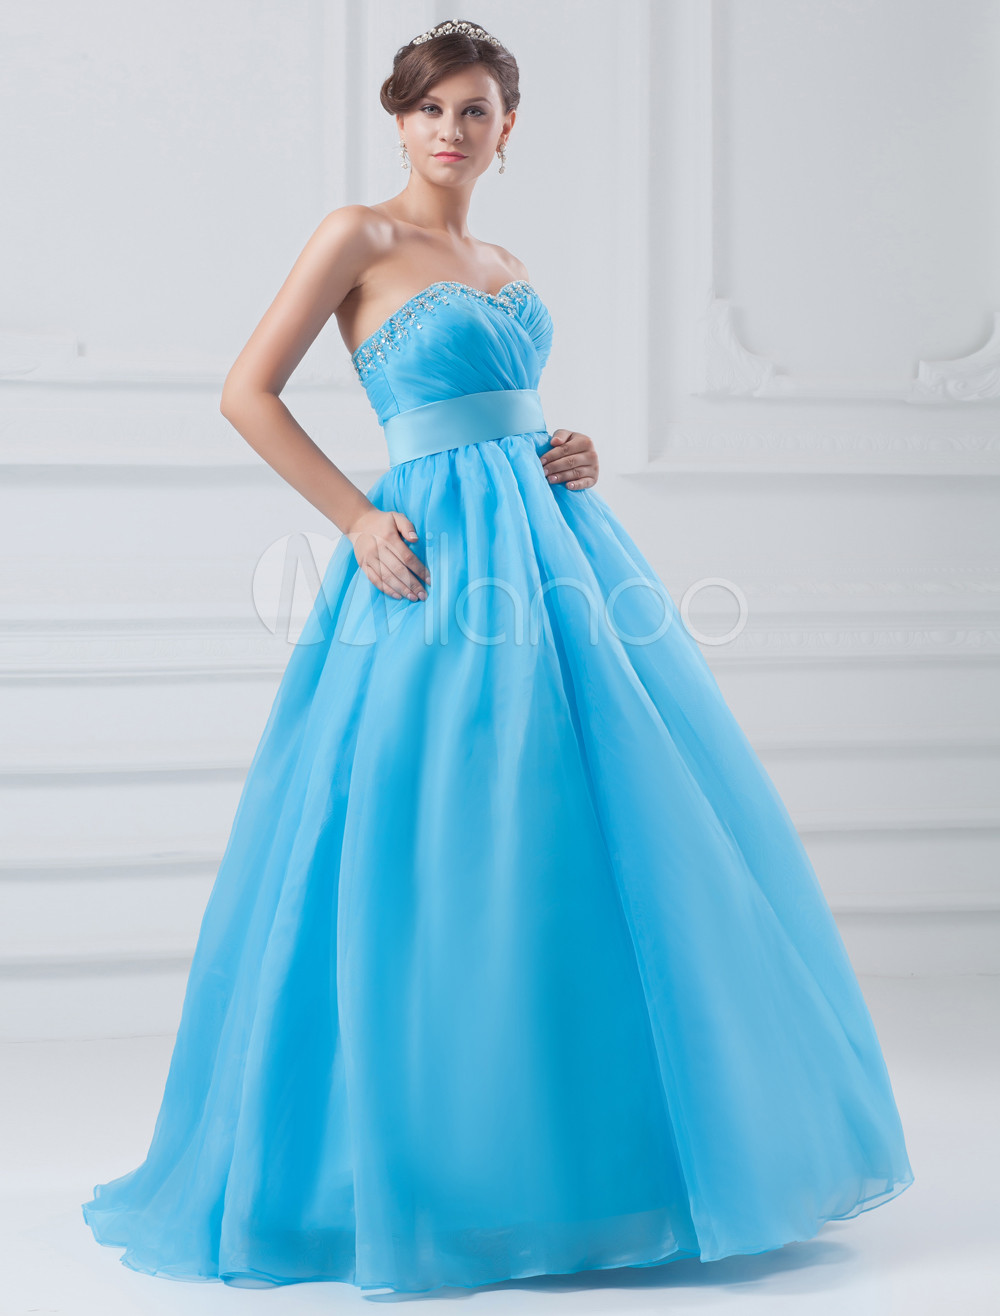 Buy Organza Prom Dress Aqua Sweetheart Ball Gown Quinceanera Dress Beading Empire Waist Floor Length Occasion Dress for $136.79 in Milanoo store